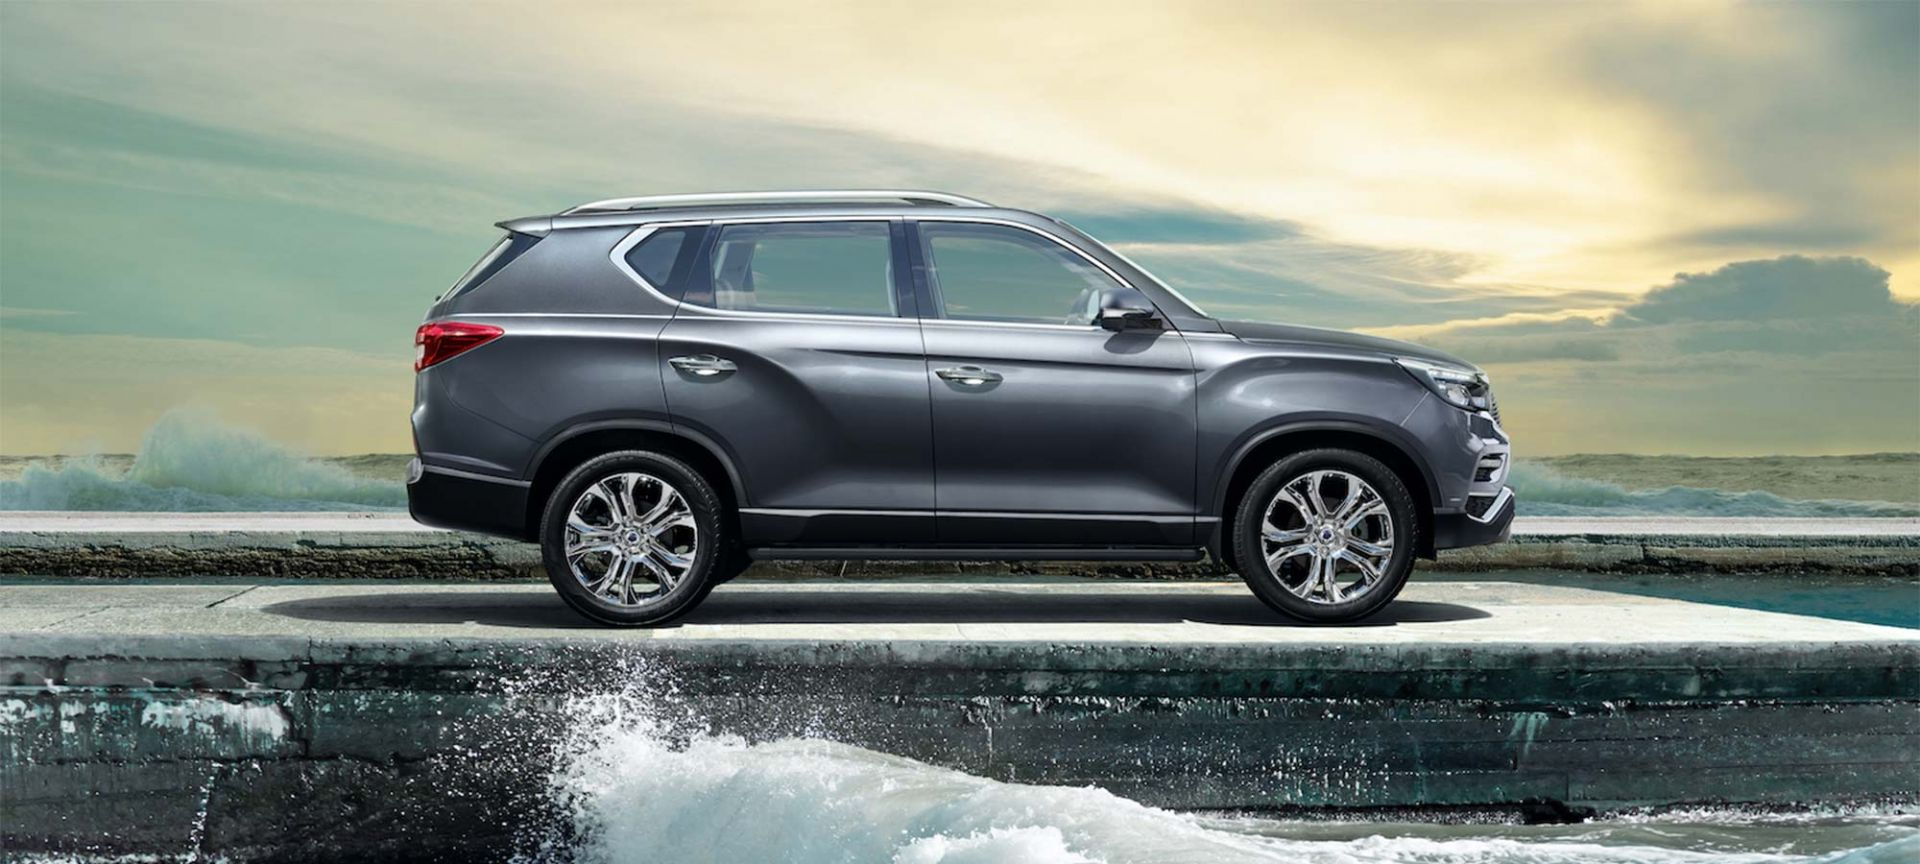 ssangyong-rexton-family-suv-luxury